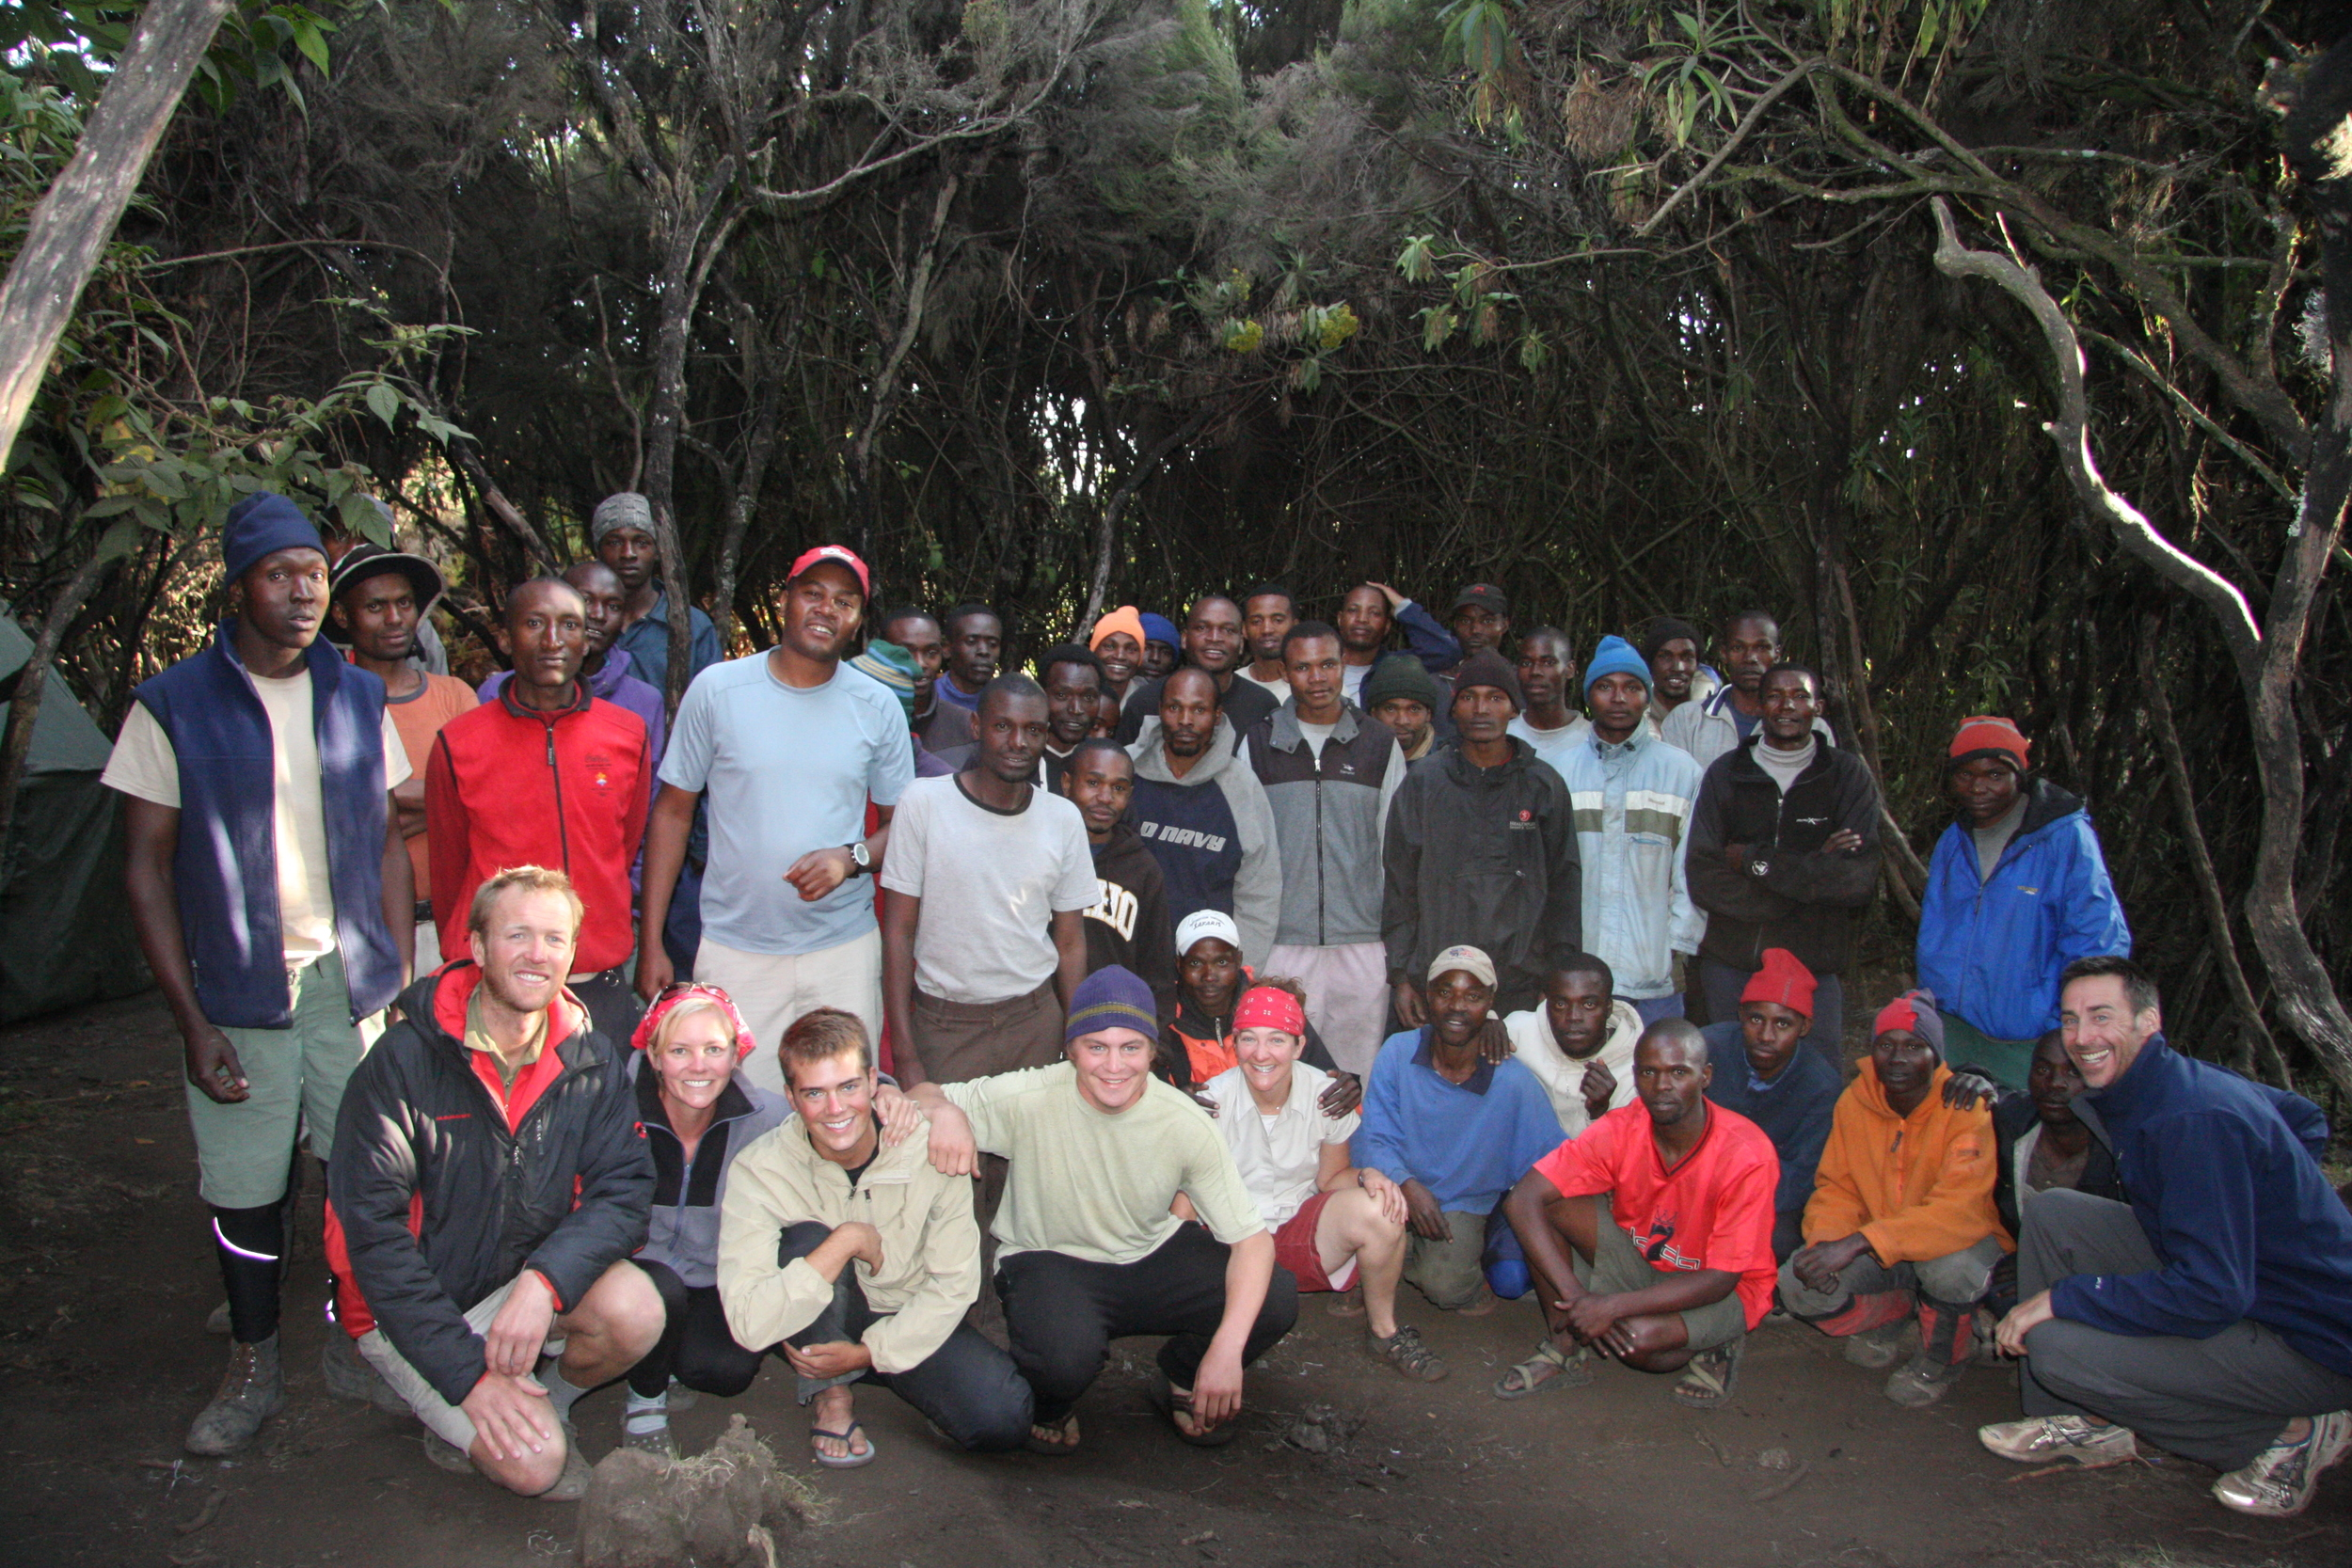 Kilimanjaro  On this trip, we built a chicken coop for orphans in Rhotia Valley and went on Safari in NgoroNgoro Crater. We also trekked a seven day Machame route of Kilimanjaro.